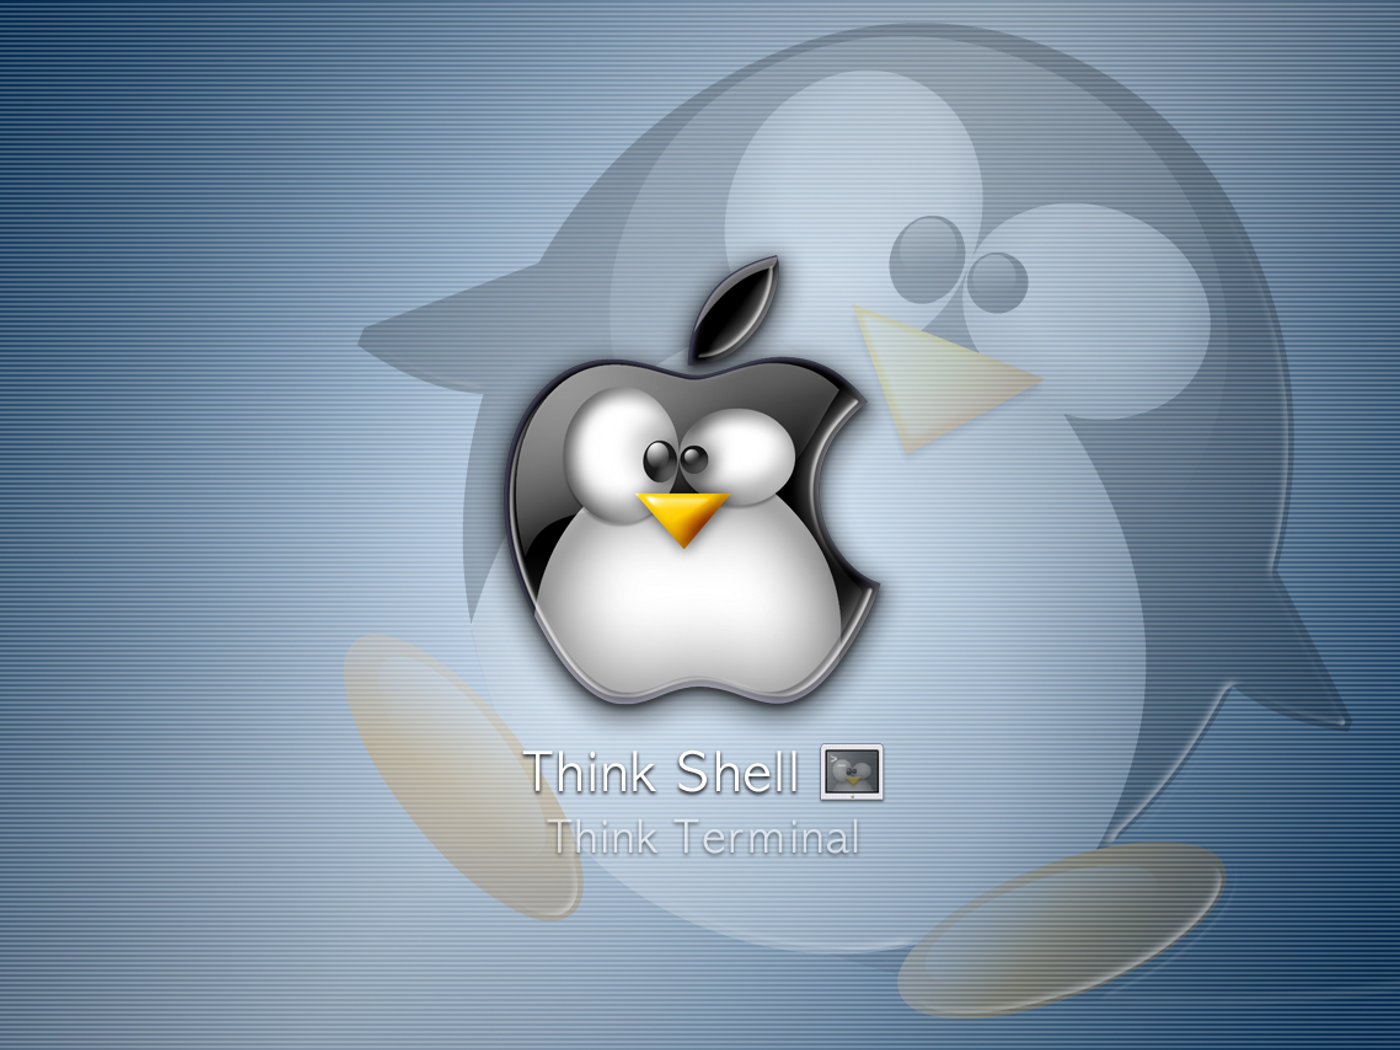 More Linux Backgrounds and Wallpapers 1400x1050